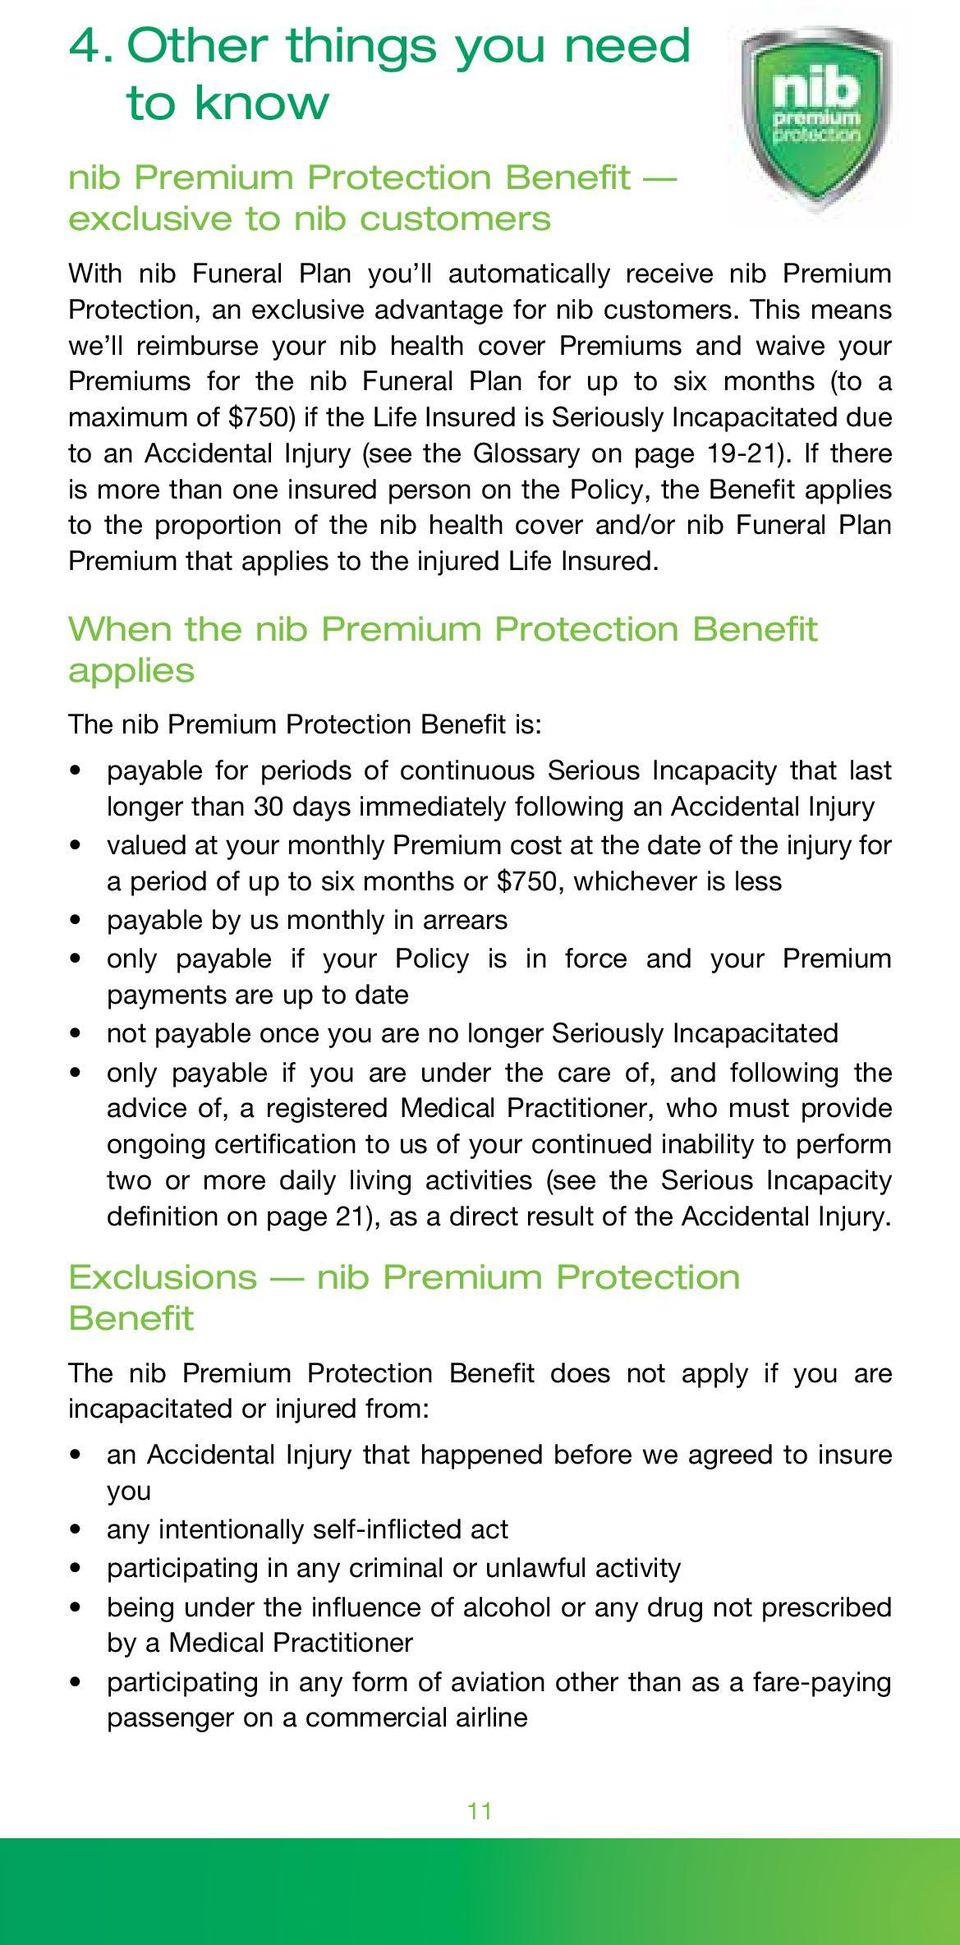 This means we ll reimburse your nib health cover Premiums and waive your Premiums for the nib Funeral Plan for up to six months (to a maximum of $750) if the Life Insured is Seriously Incapacitated